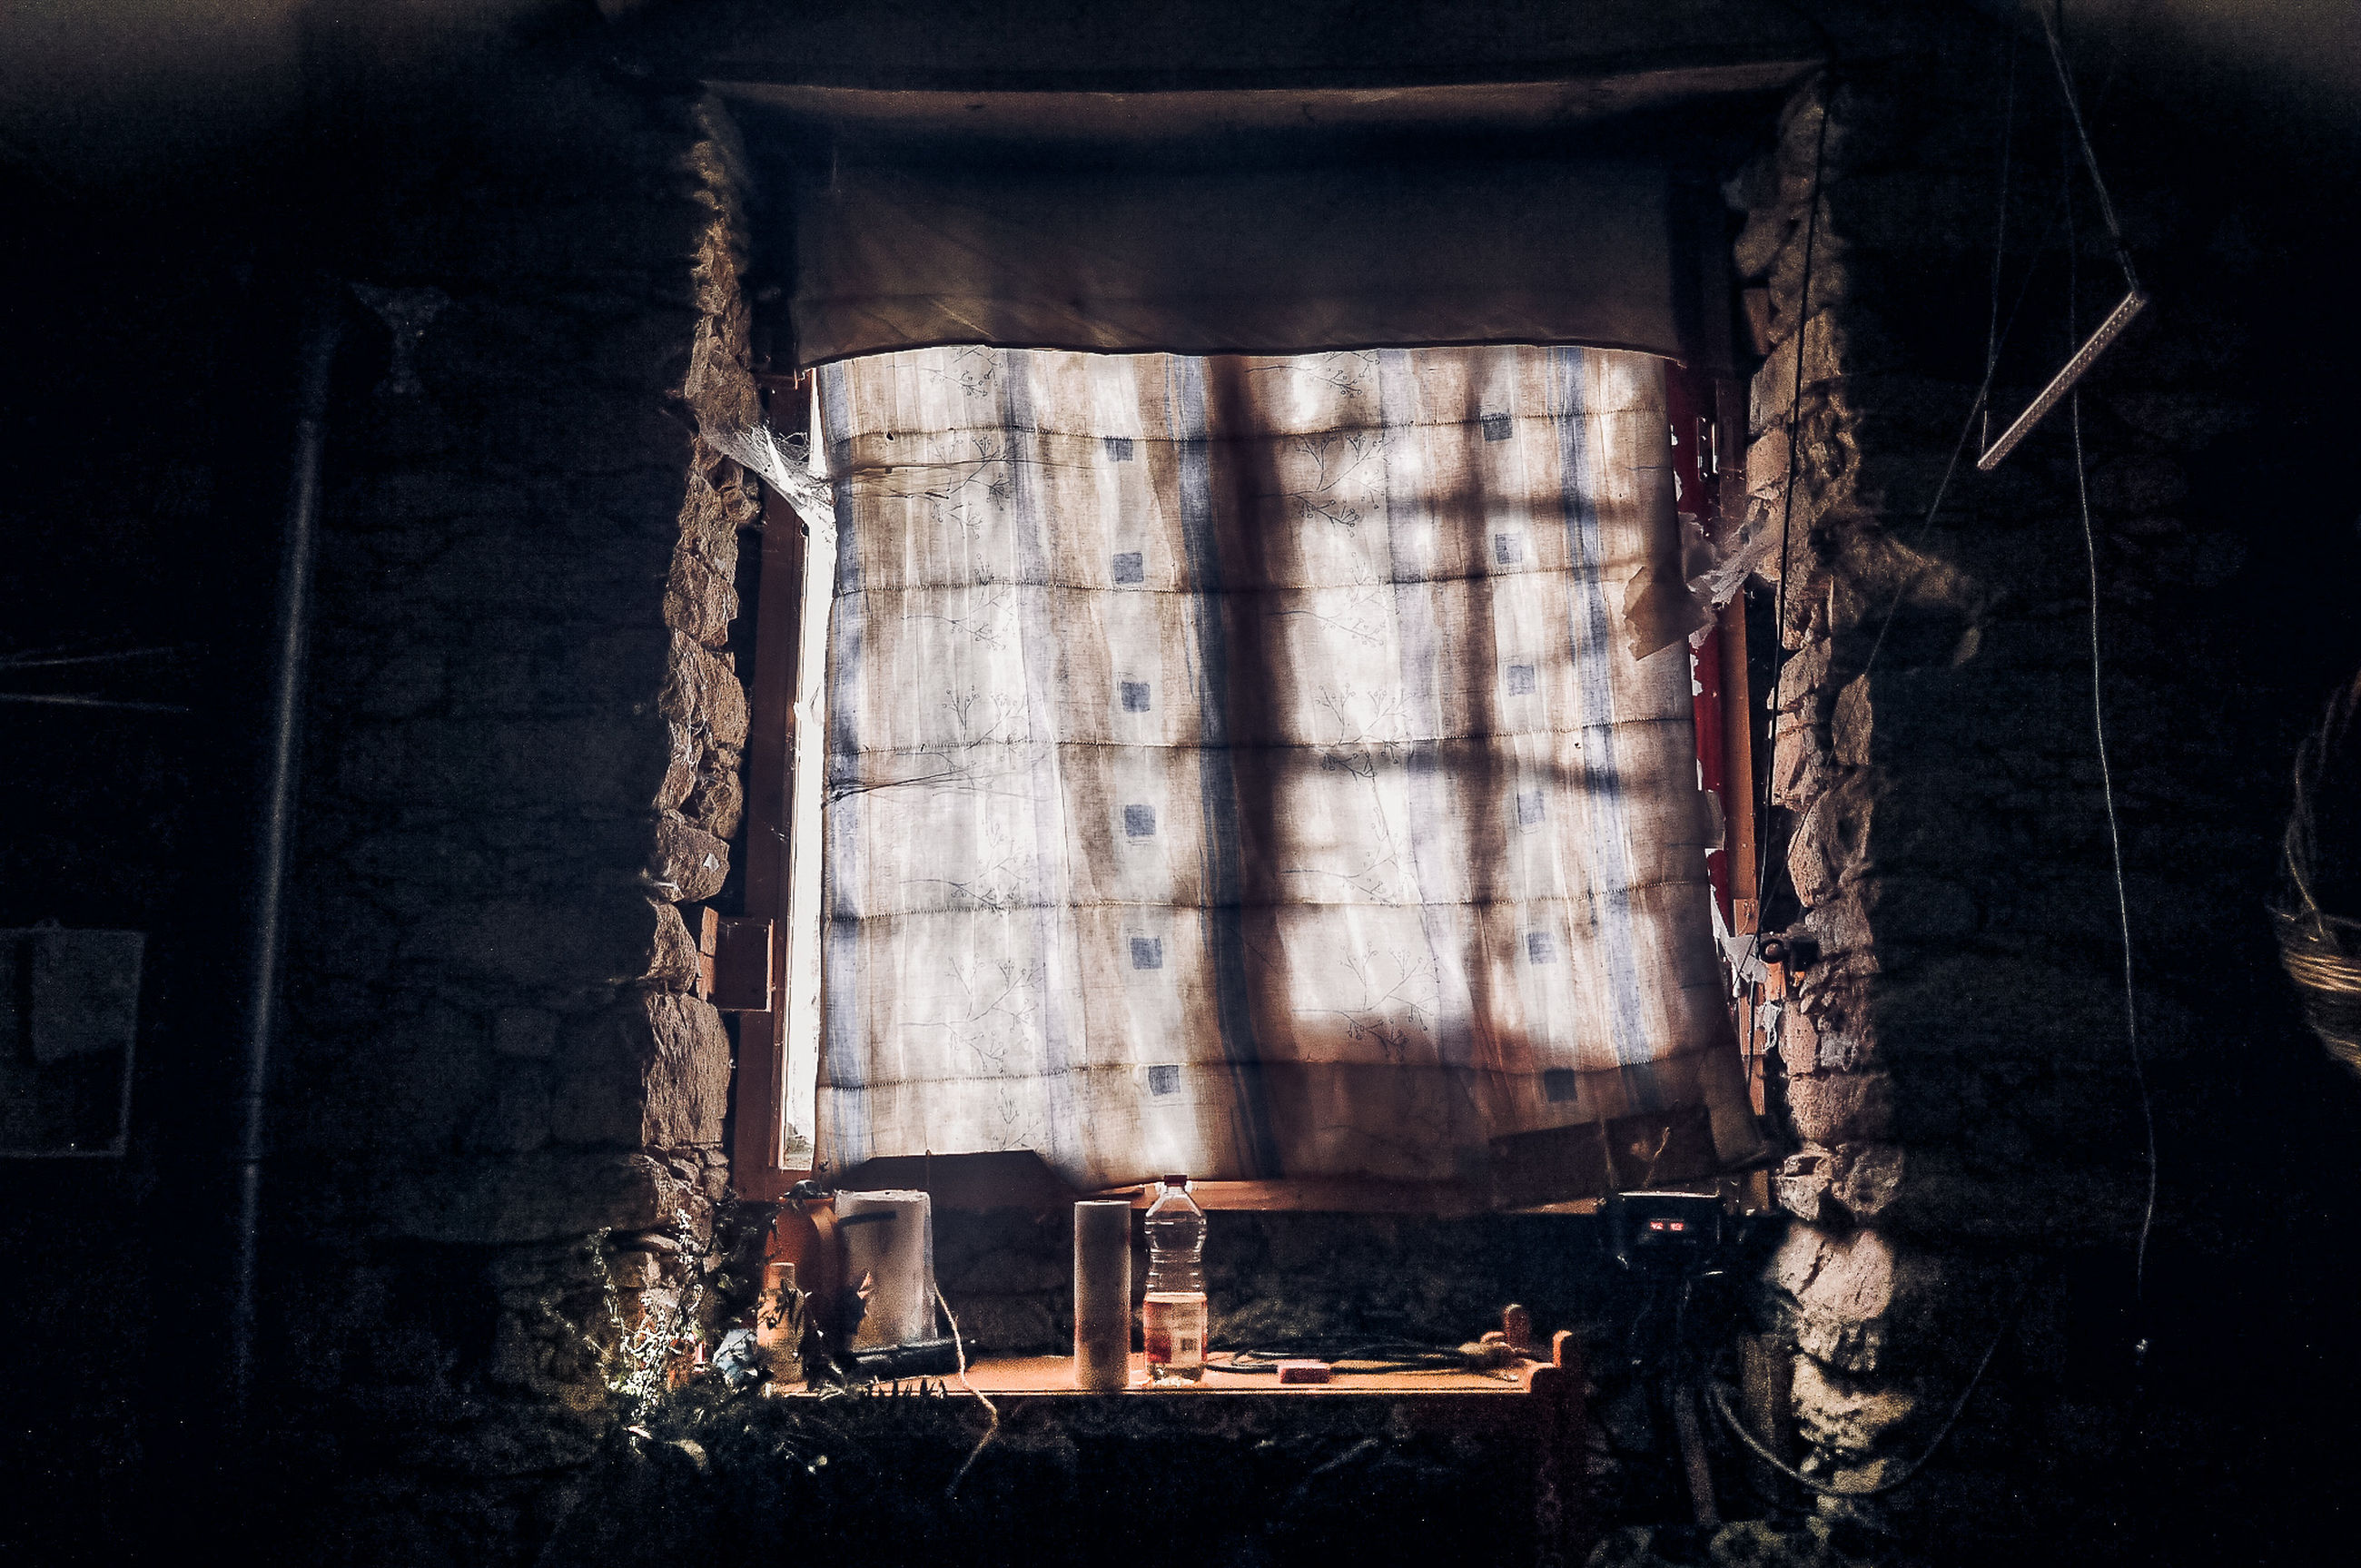 abandoned, architecture, window, indoors, day, old, built structure, no people, nature, damaged, building, hanging, sunlight, rope, wood - material, run-down, dark, curtain, shadow, ruined